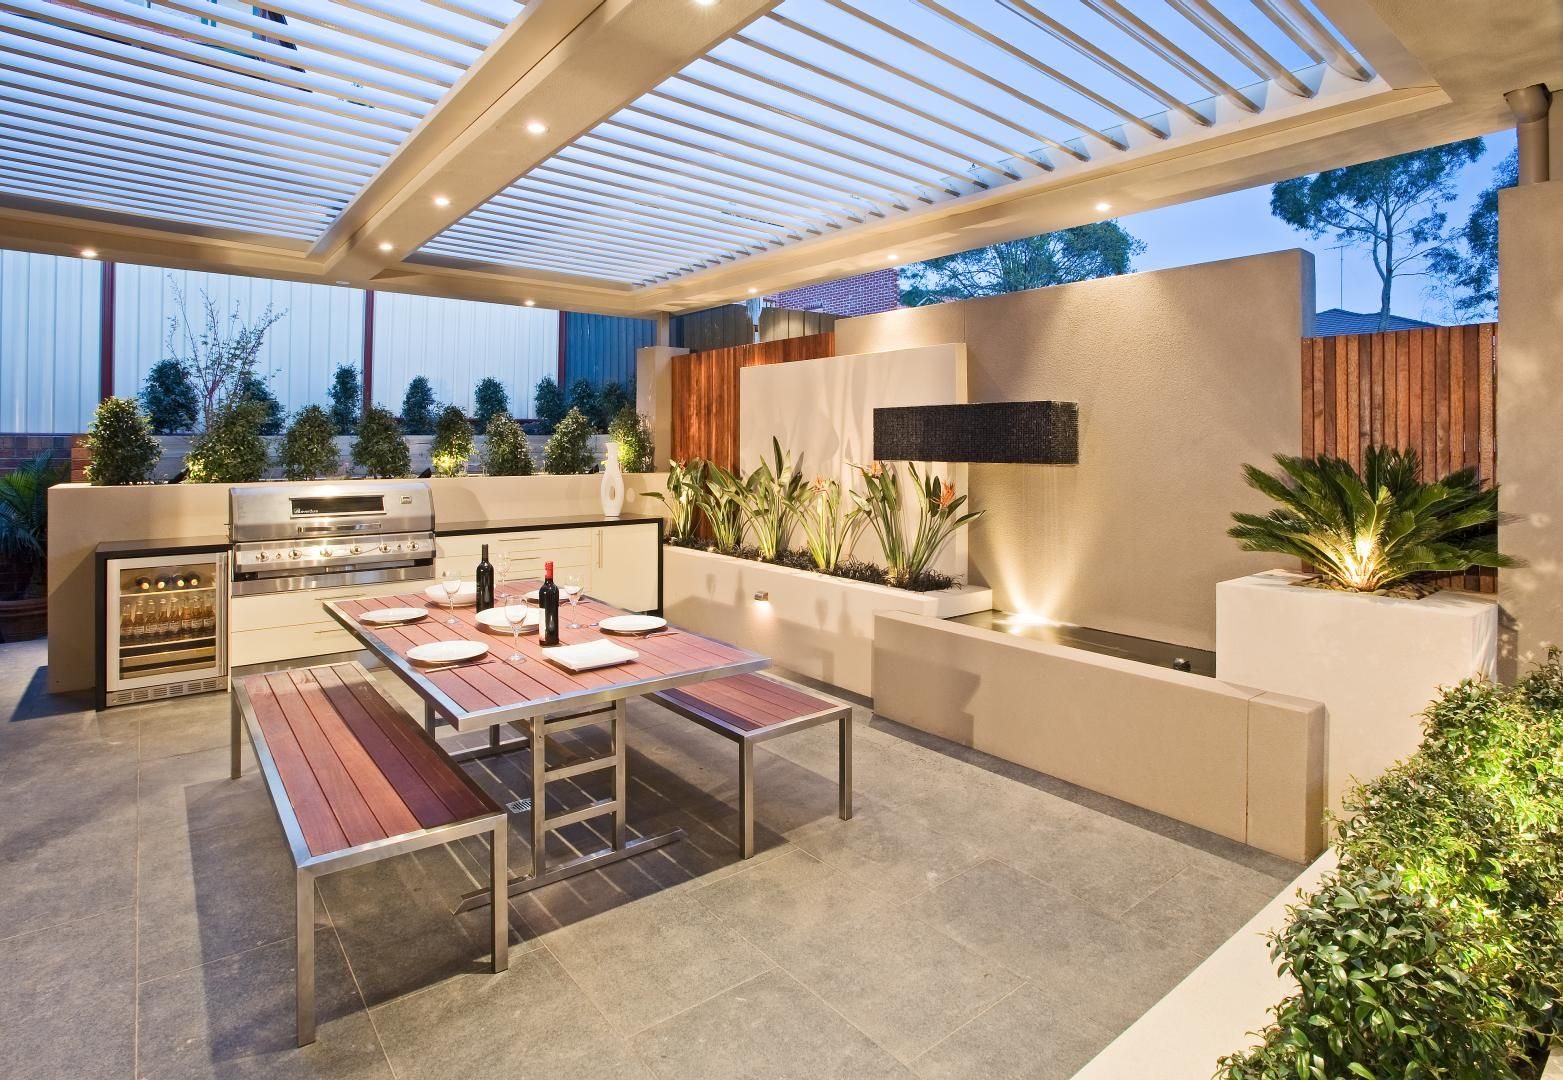 Outdoor entertaining area. Project by COS Design